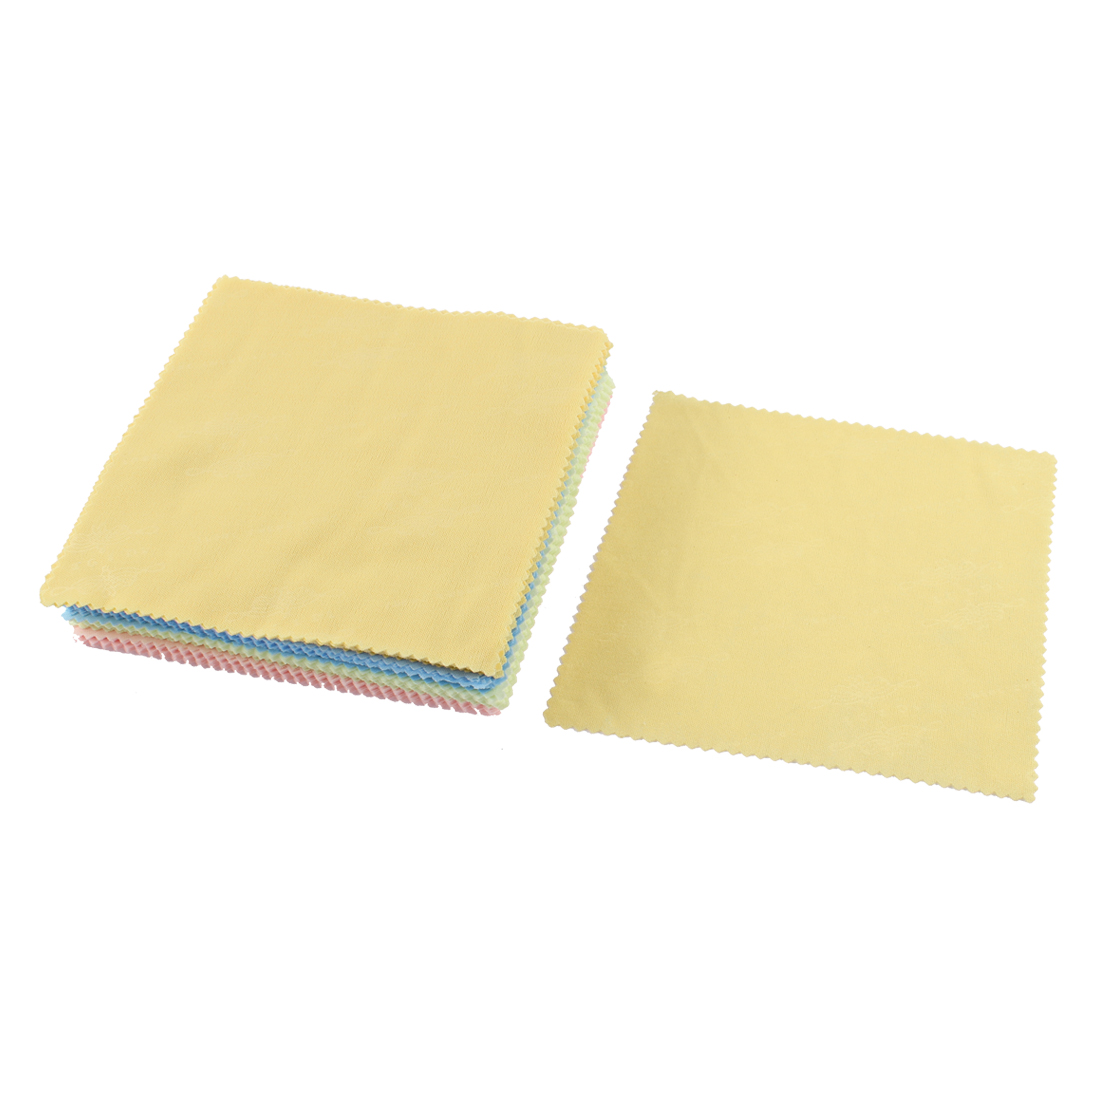 70 Pcs Multicolor Scalloped Edge Glasses Lens Cleaning Cloth 14 x 13.5cm